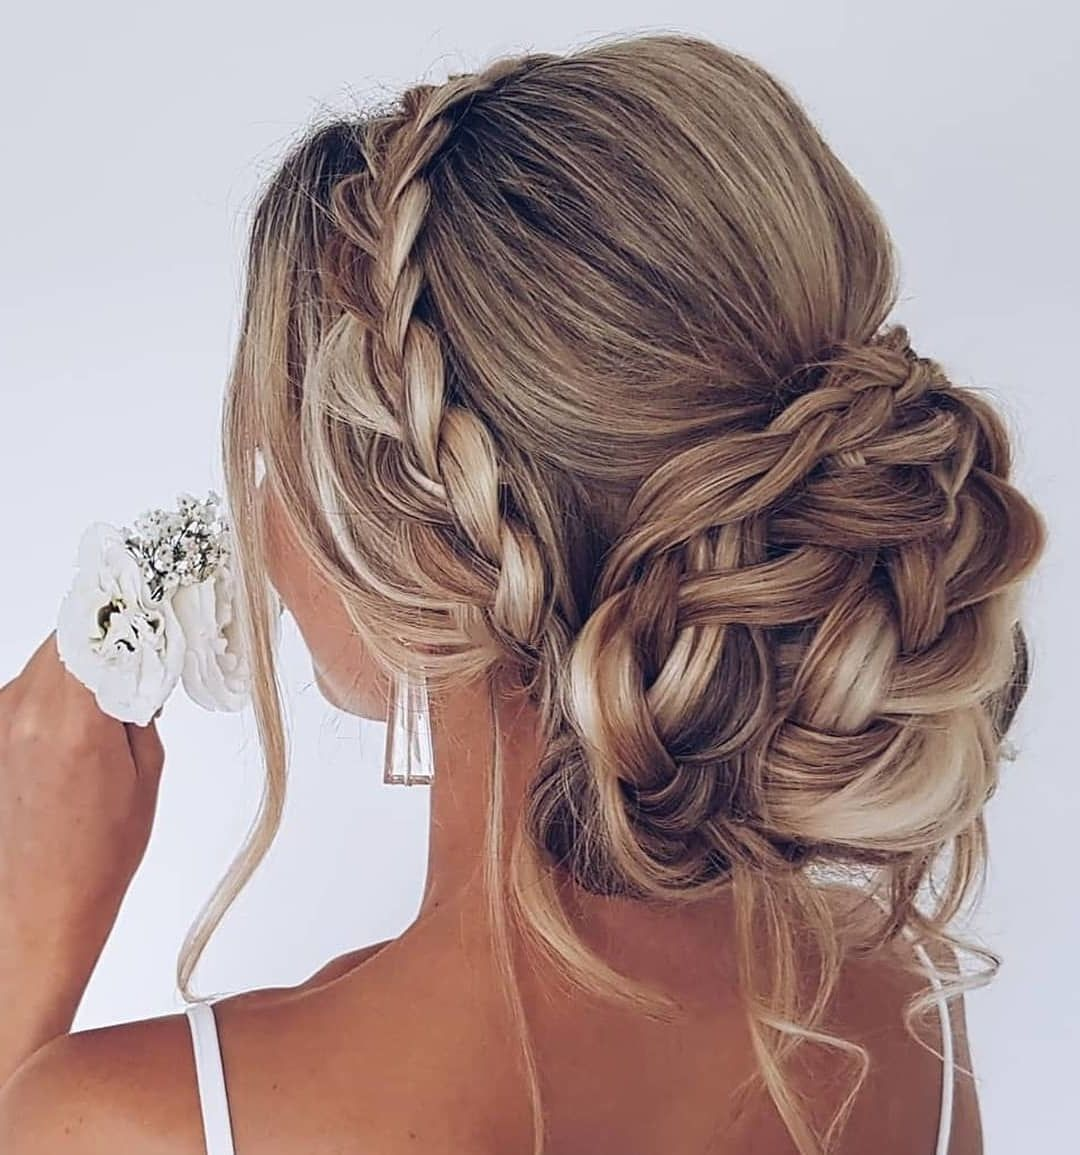 25 Updo Wedding Hairstyles For Long Hair Best Wedding Style Long Hair Styles Long Hair Wedding Styles Bride Hairstyles